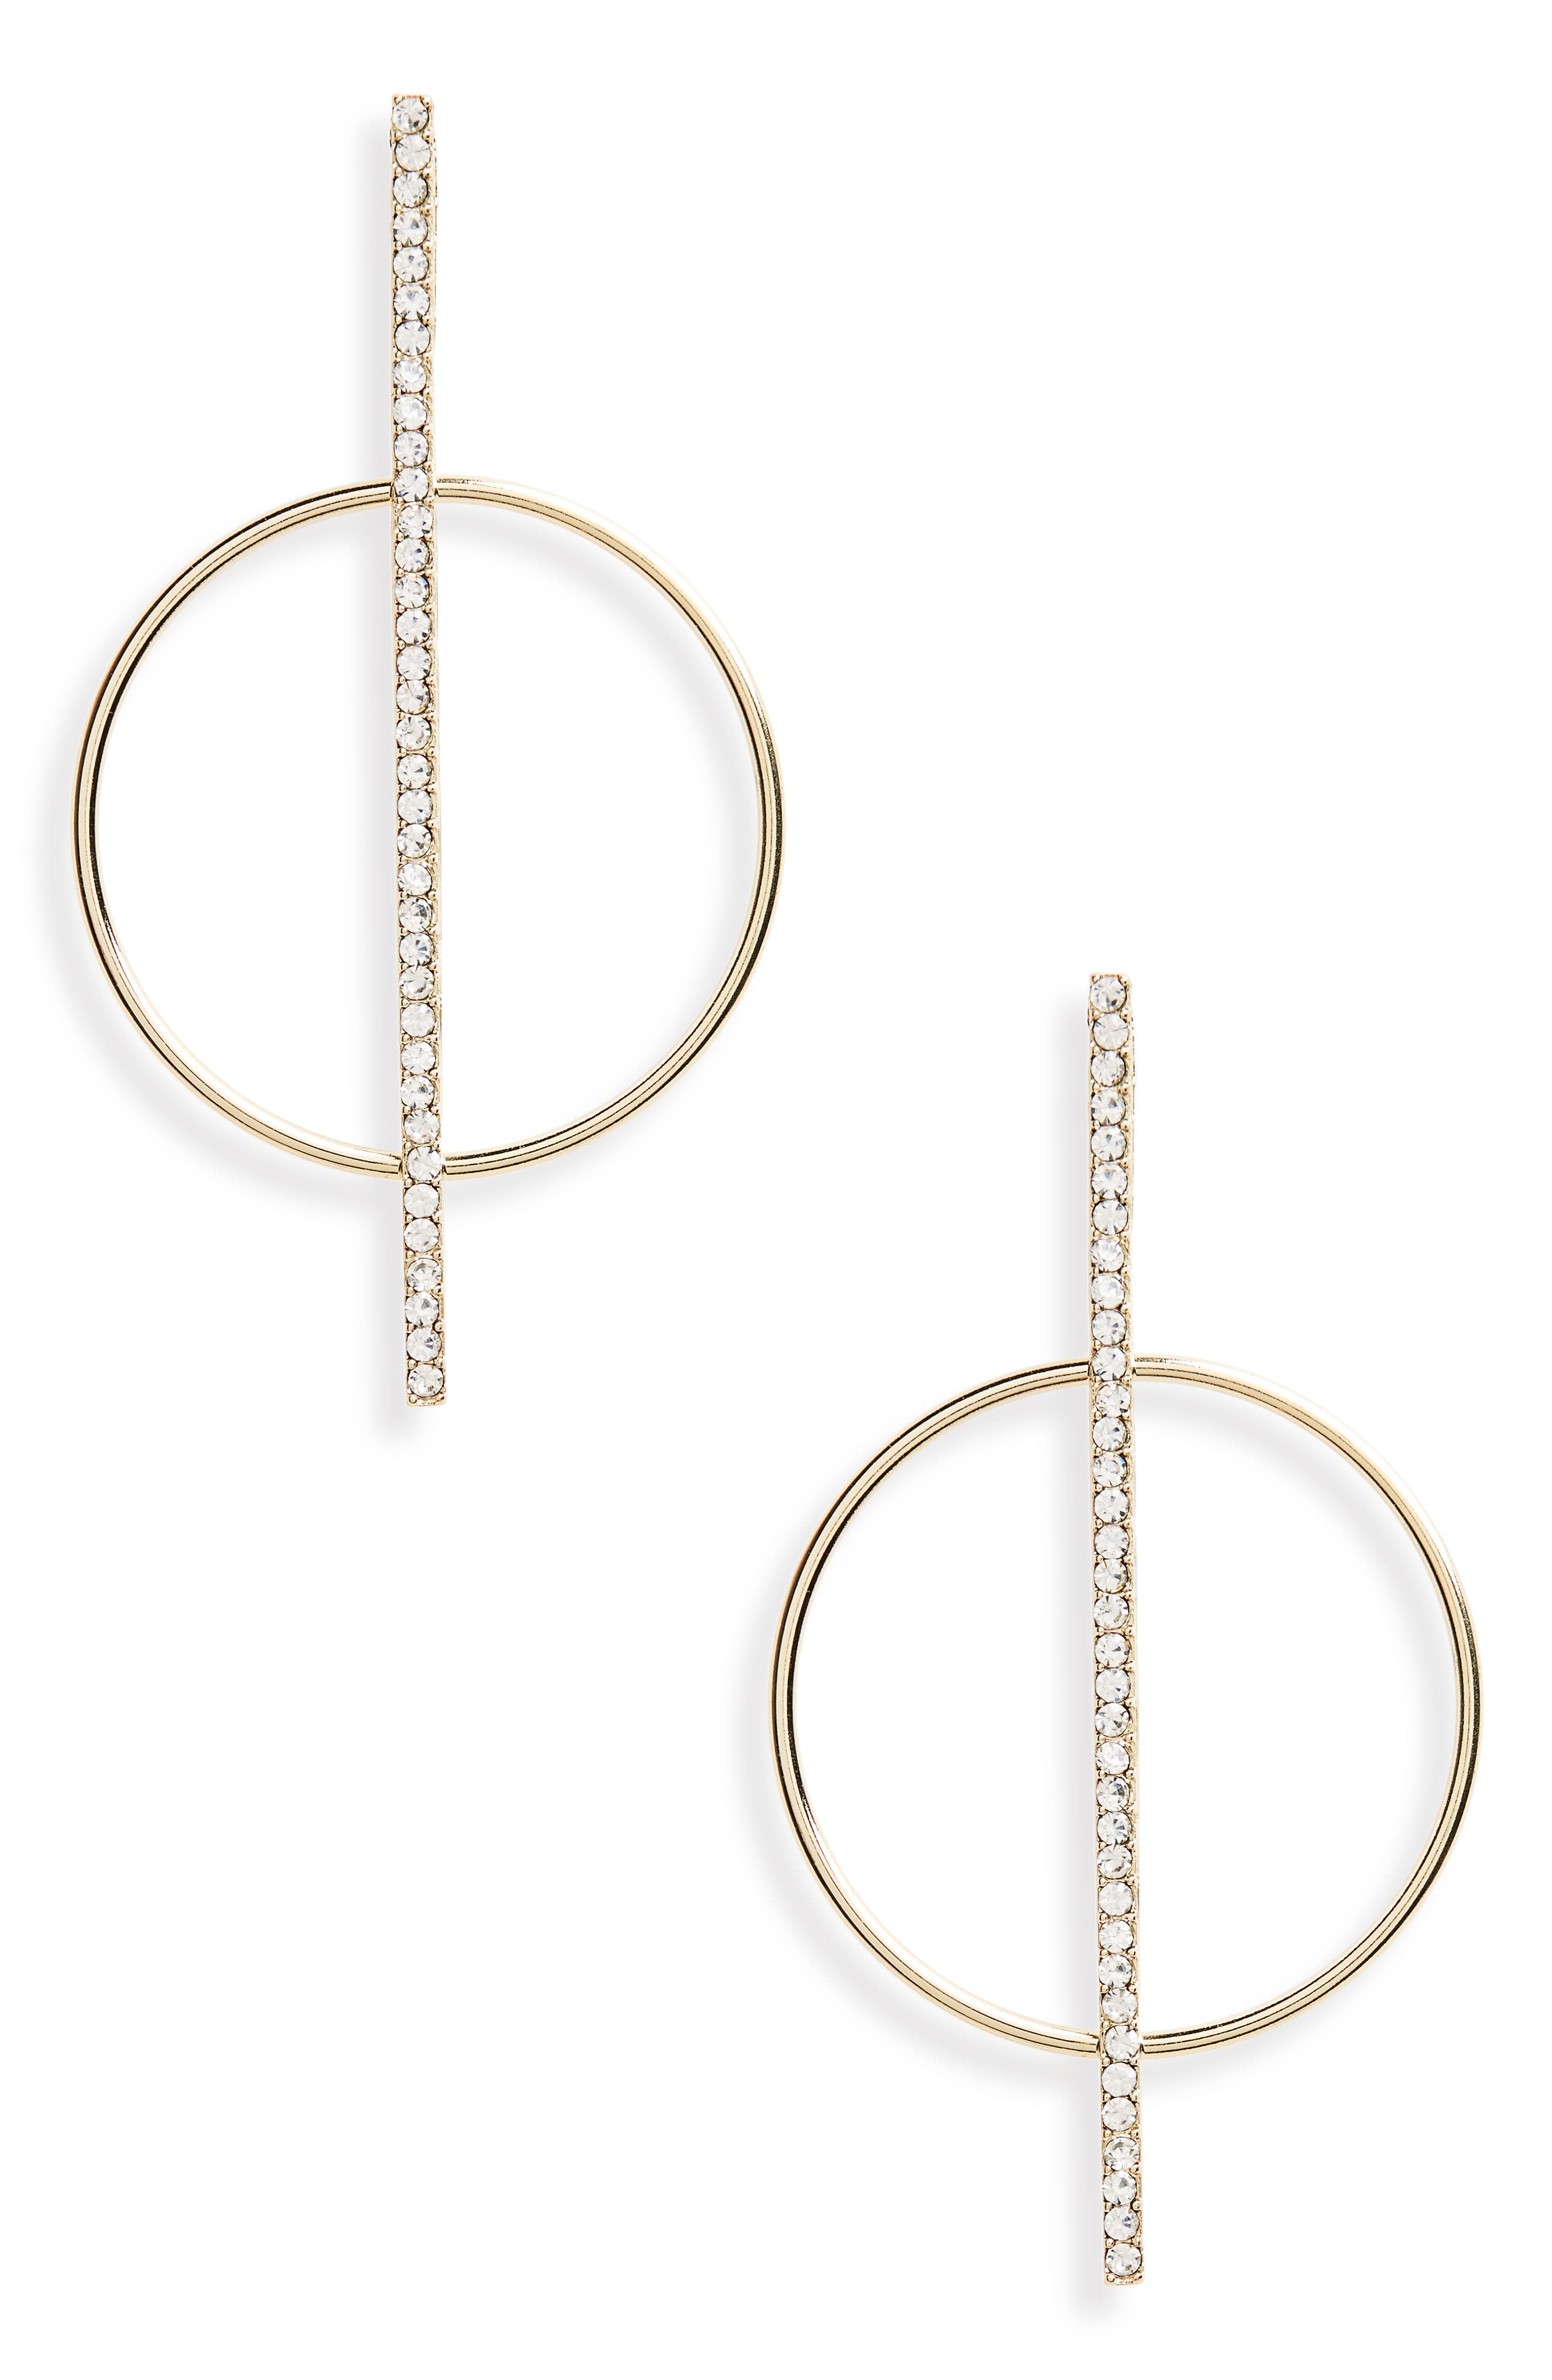 Line Crystal Statement Earrings,                         Main,                         color, Gold